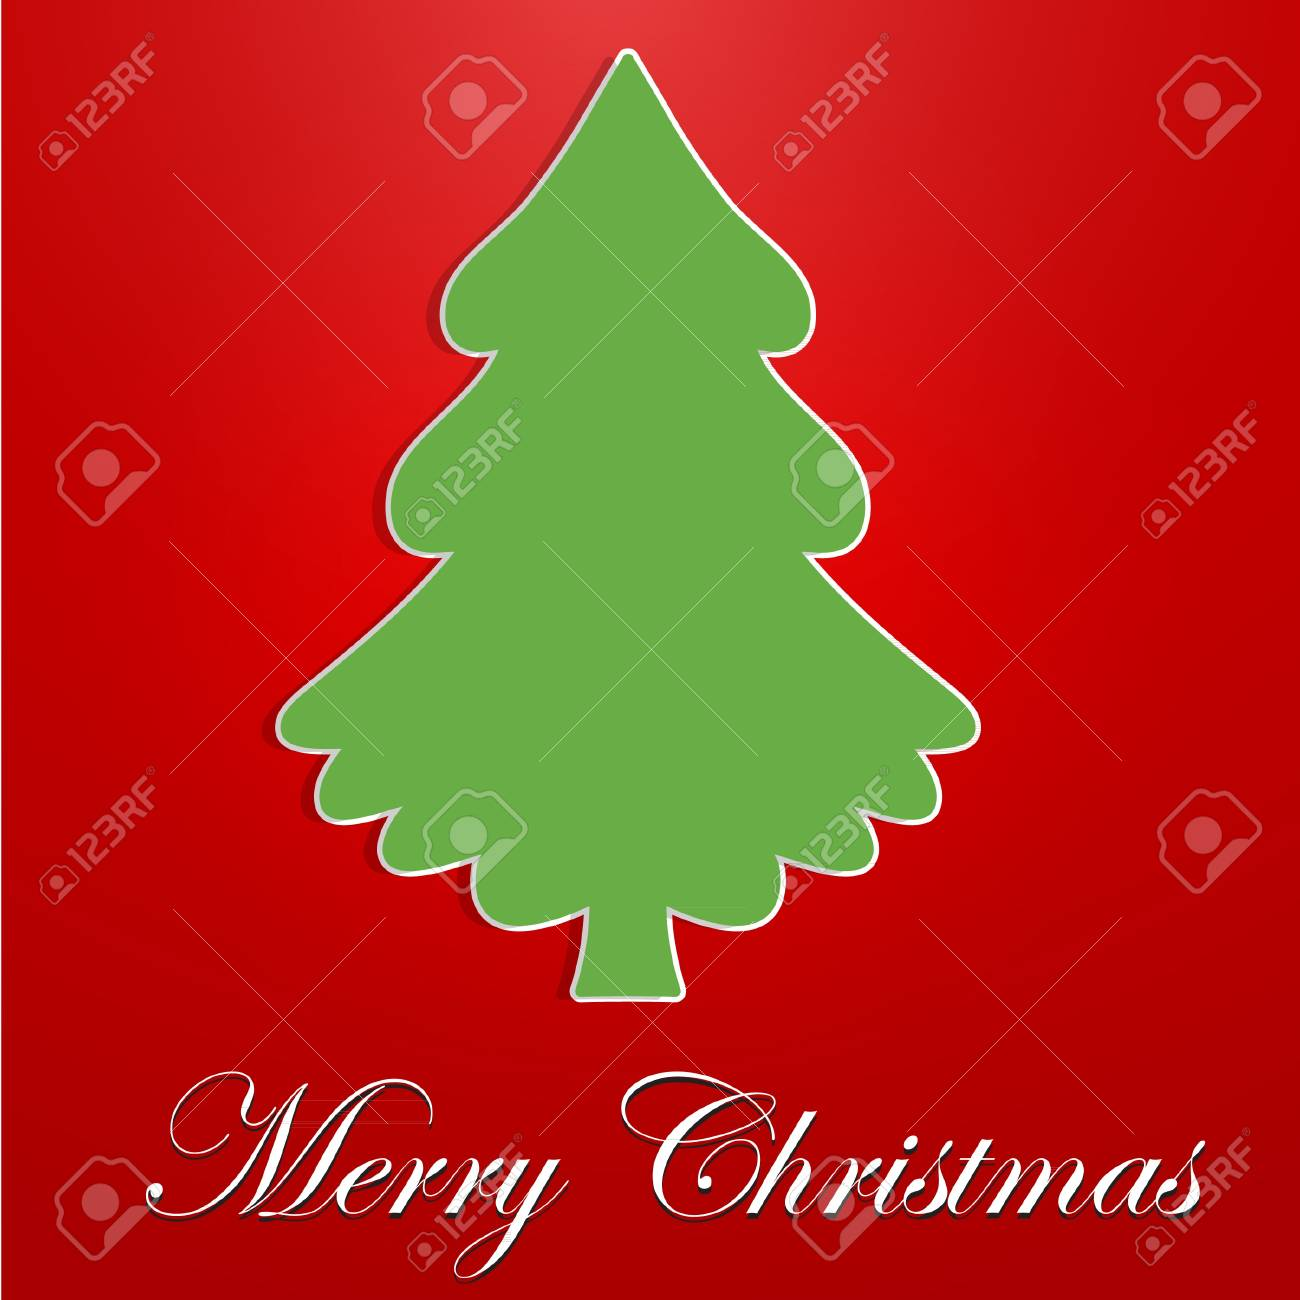 A stylized, Green Christmas Tree Stock Vector - 16594758